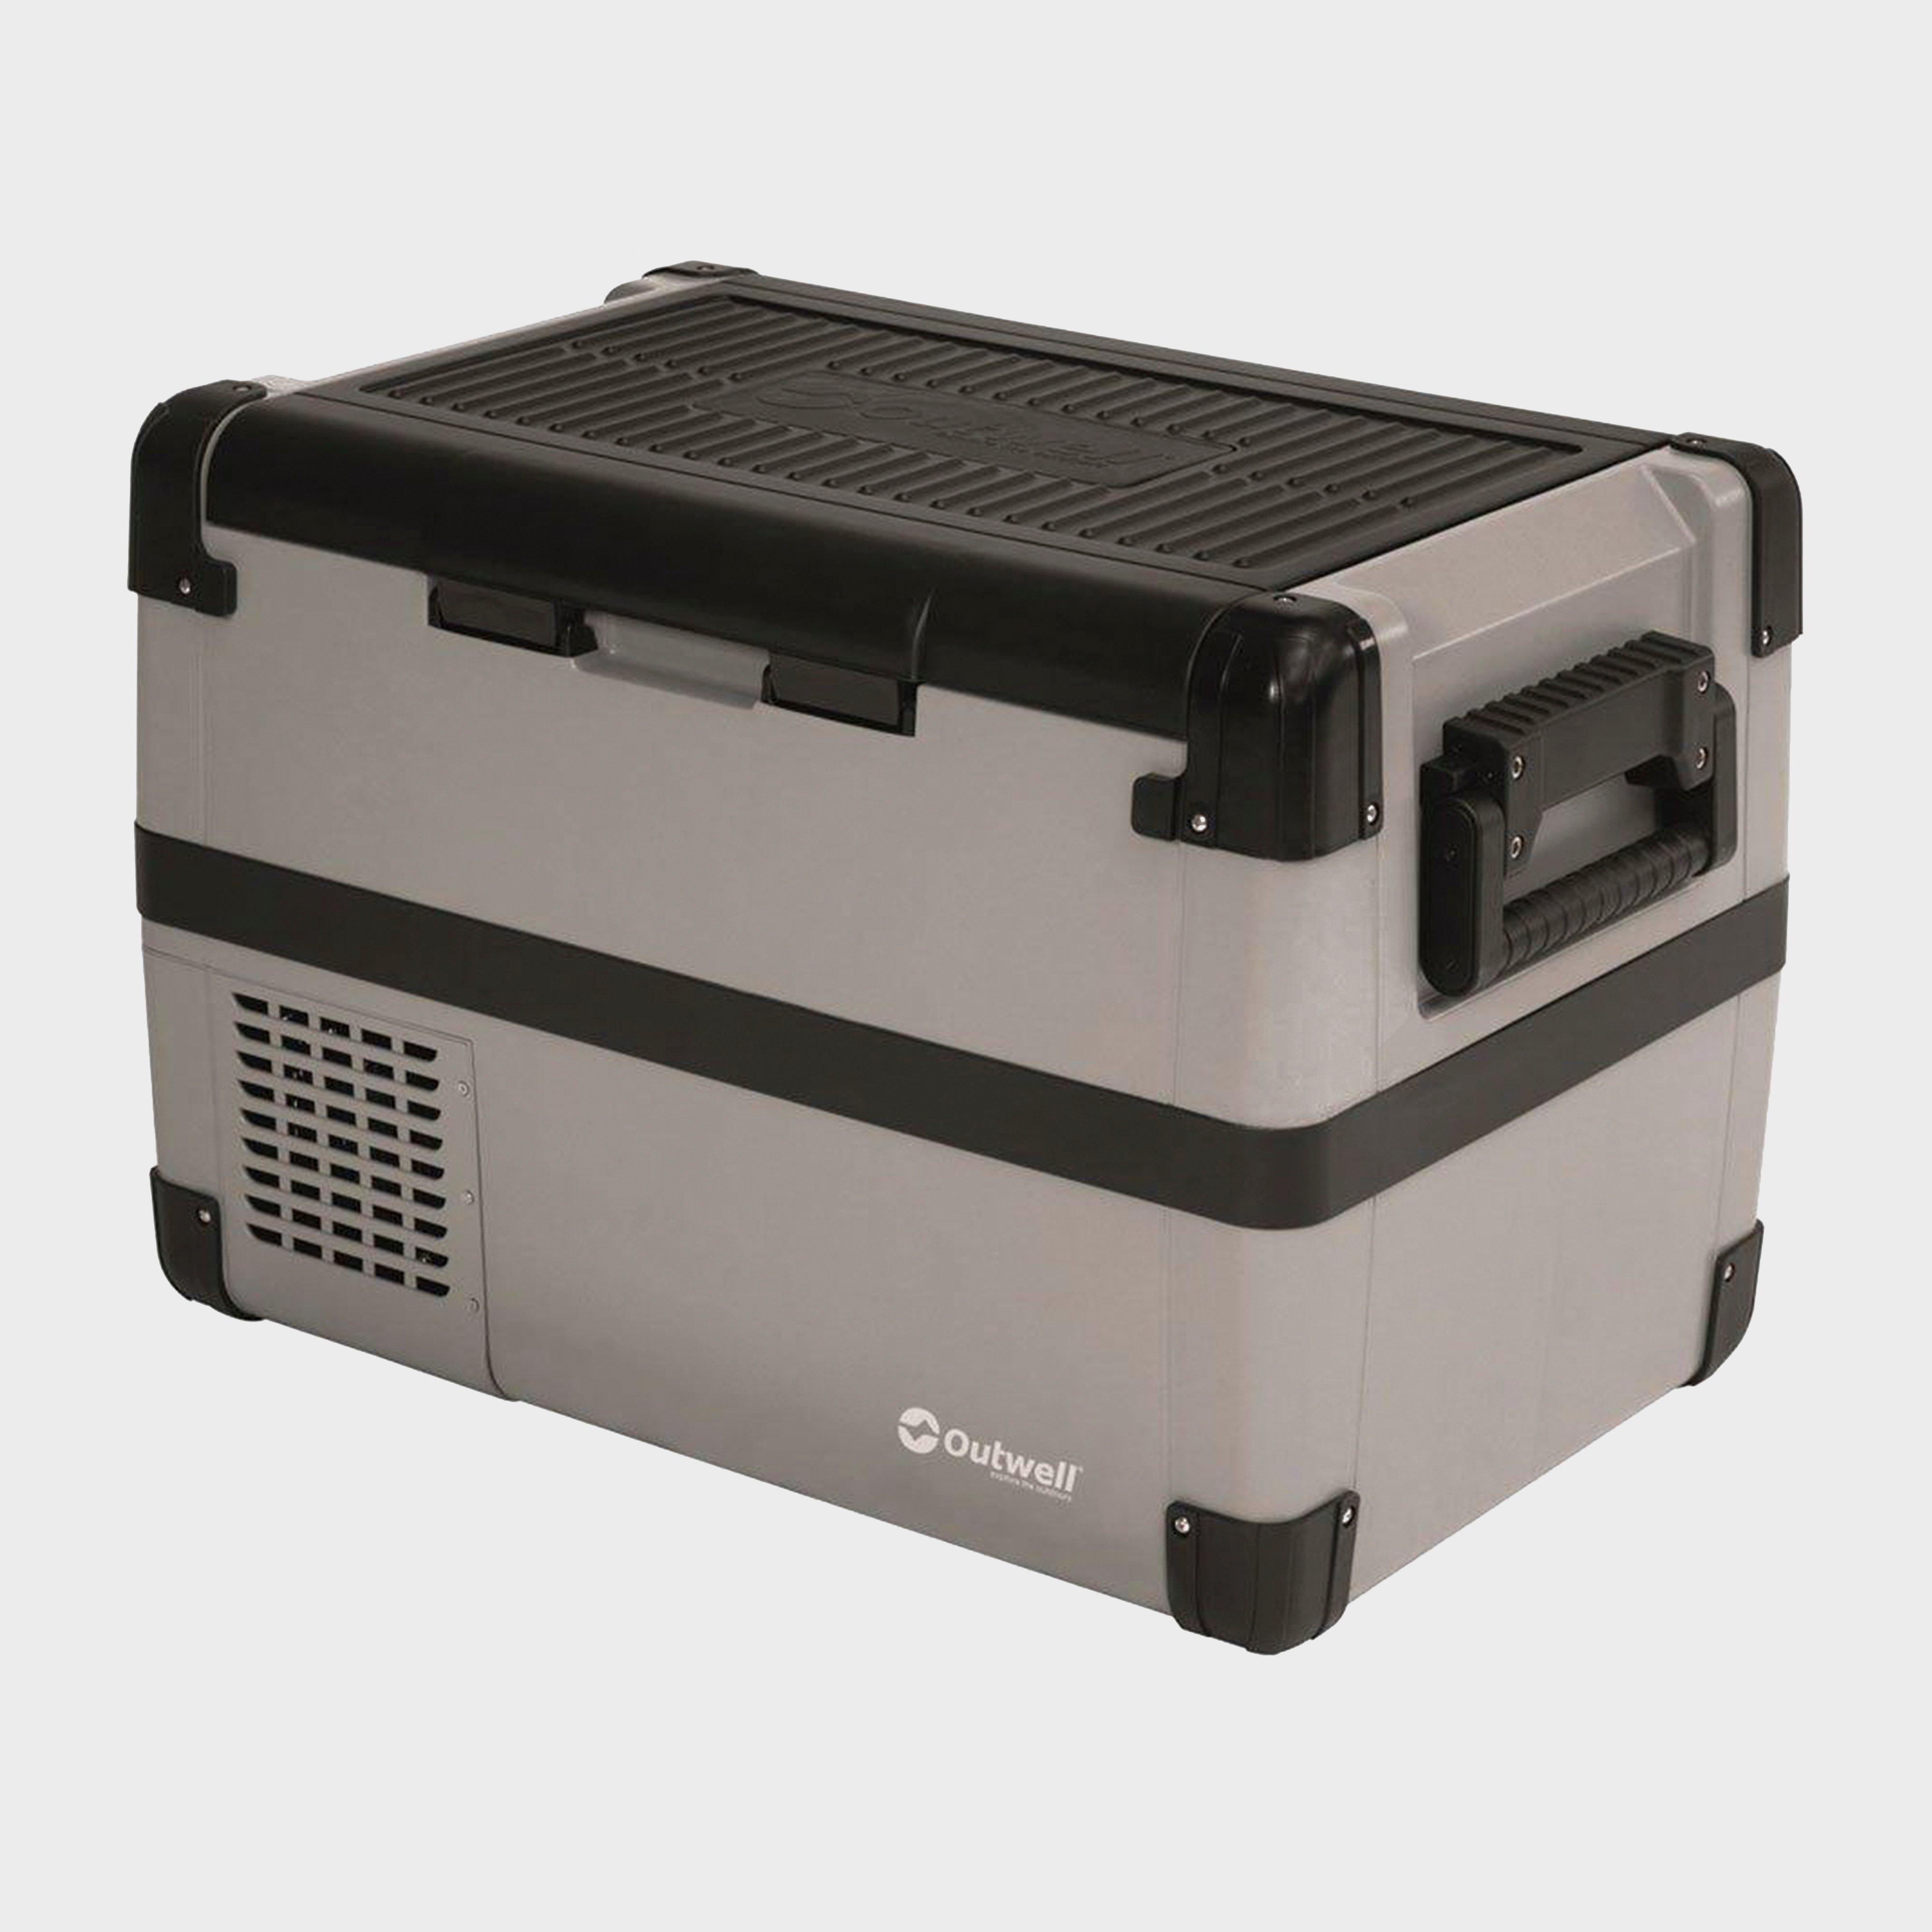 Outwell Outwell Deep Cool 50L Coolbox with Compressor - Grey, Grey